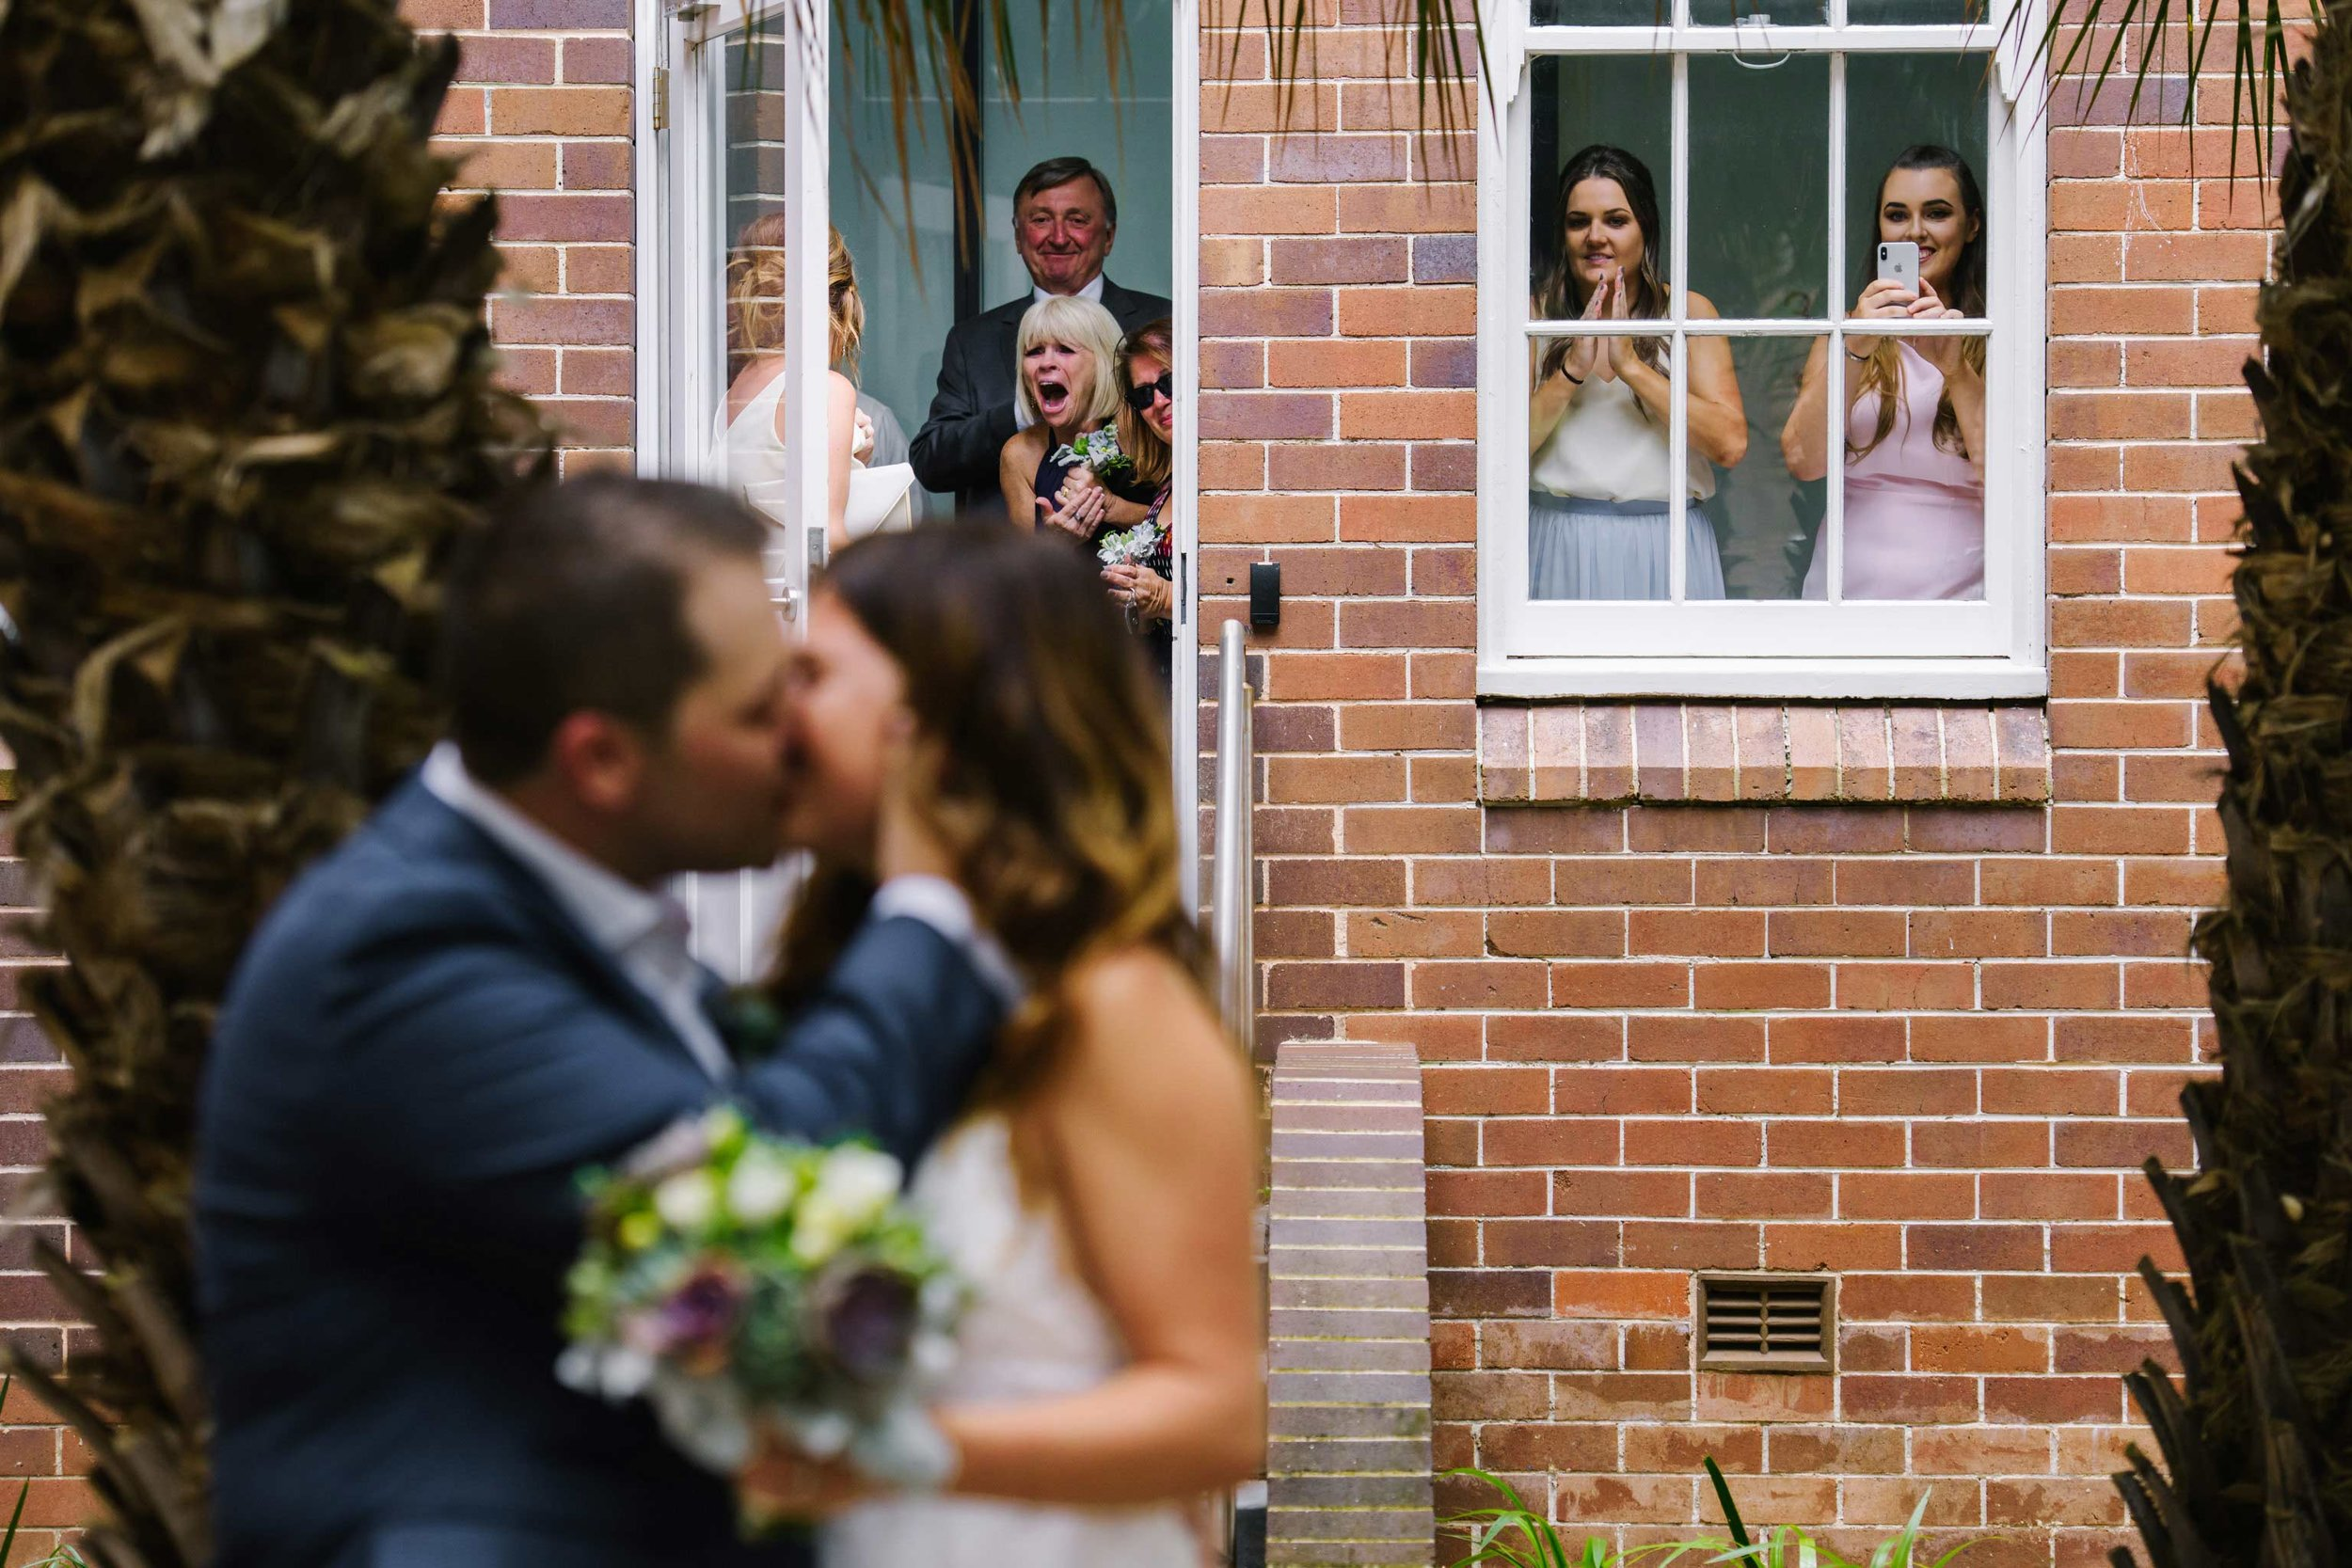 Bride and groom kiss after first look while family looks on